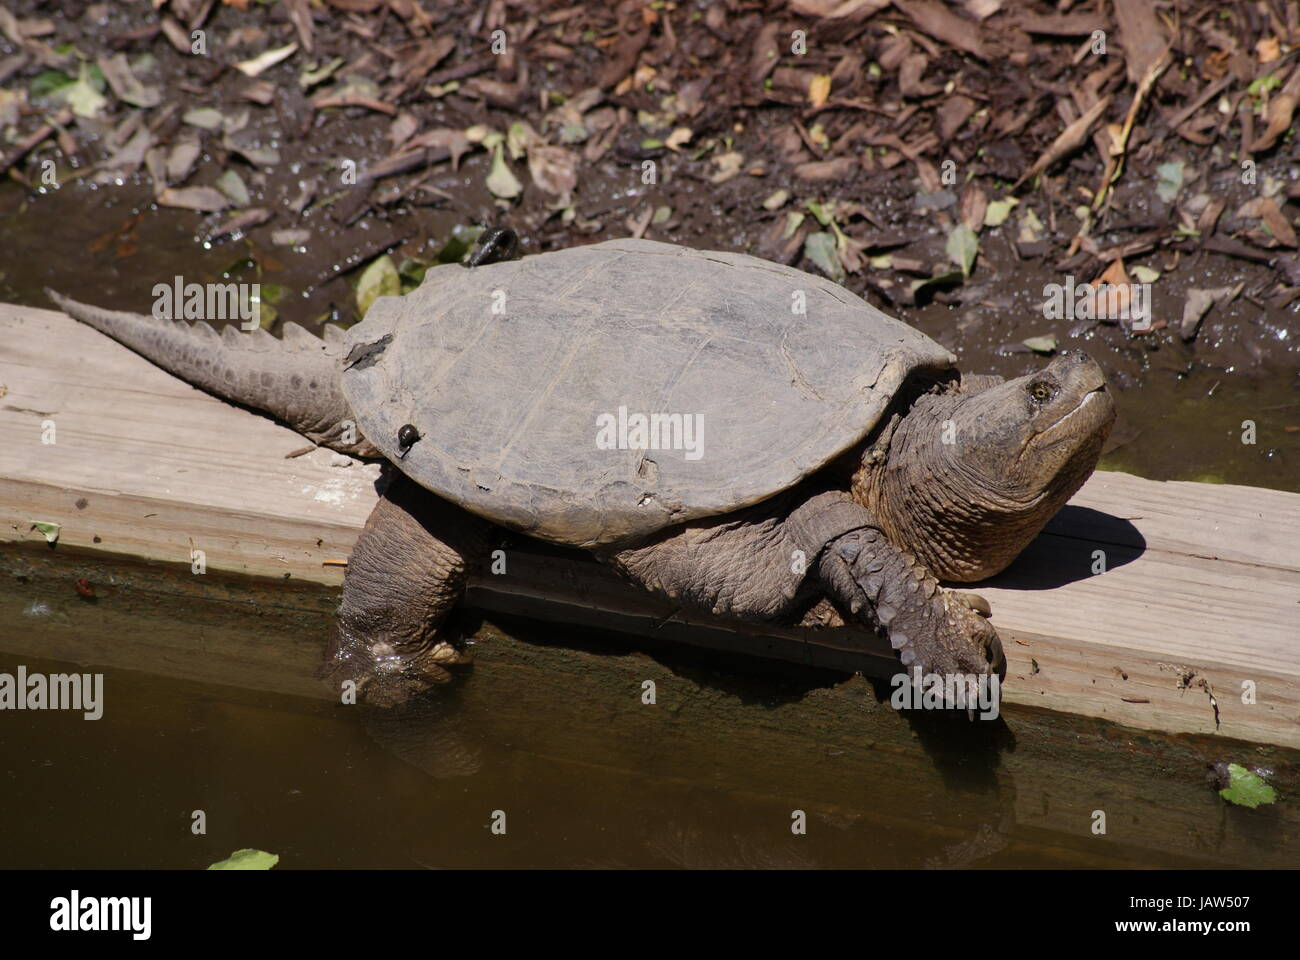 Large snapping turtle baking in the sunshine on the edge of the water. Stock Photo